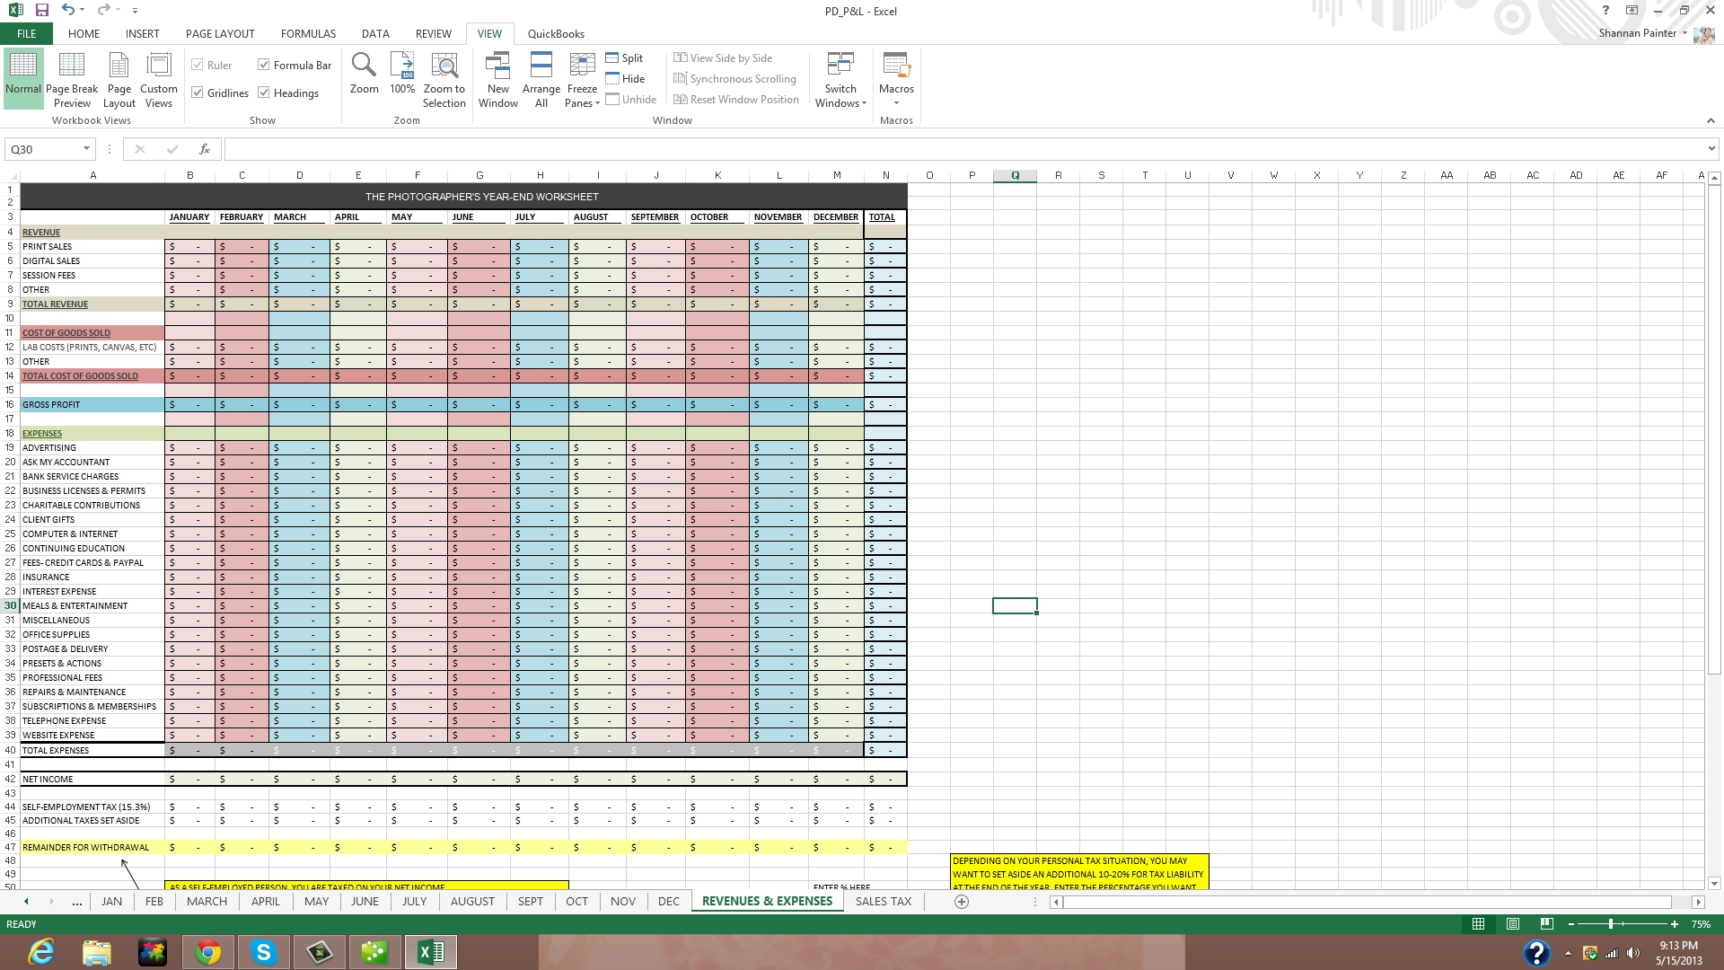 Free Client Tracking Spreadsheet | Nbd To Sales Tax Tracking Inside Sales Tax Tracking Spreadsheet